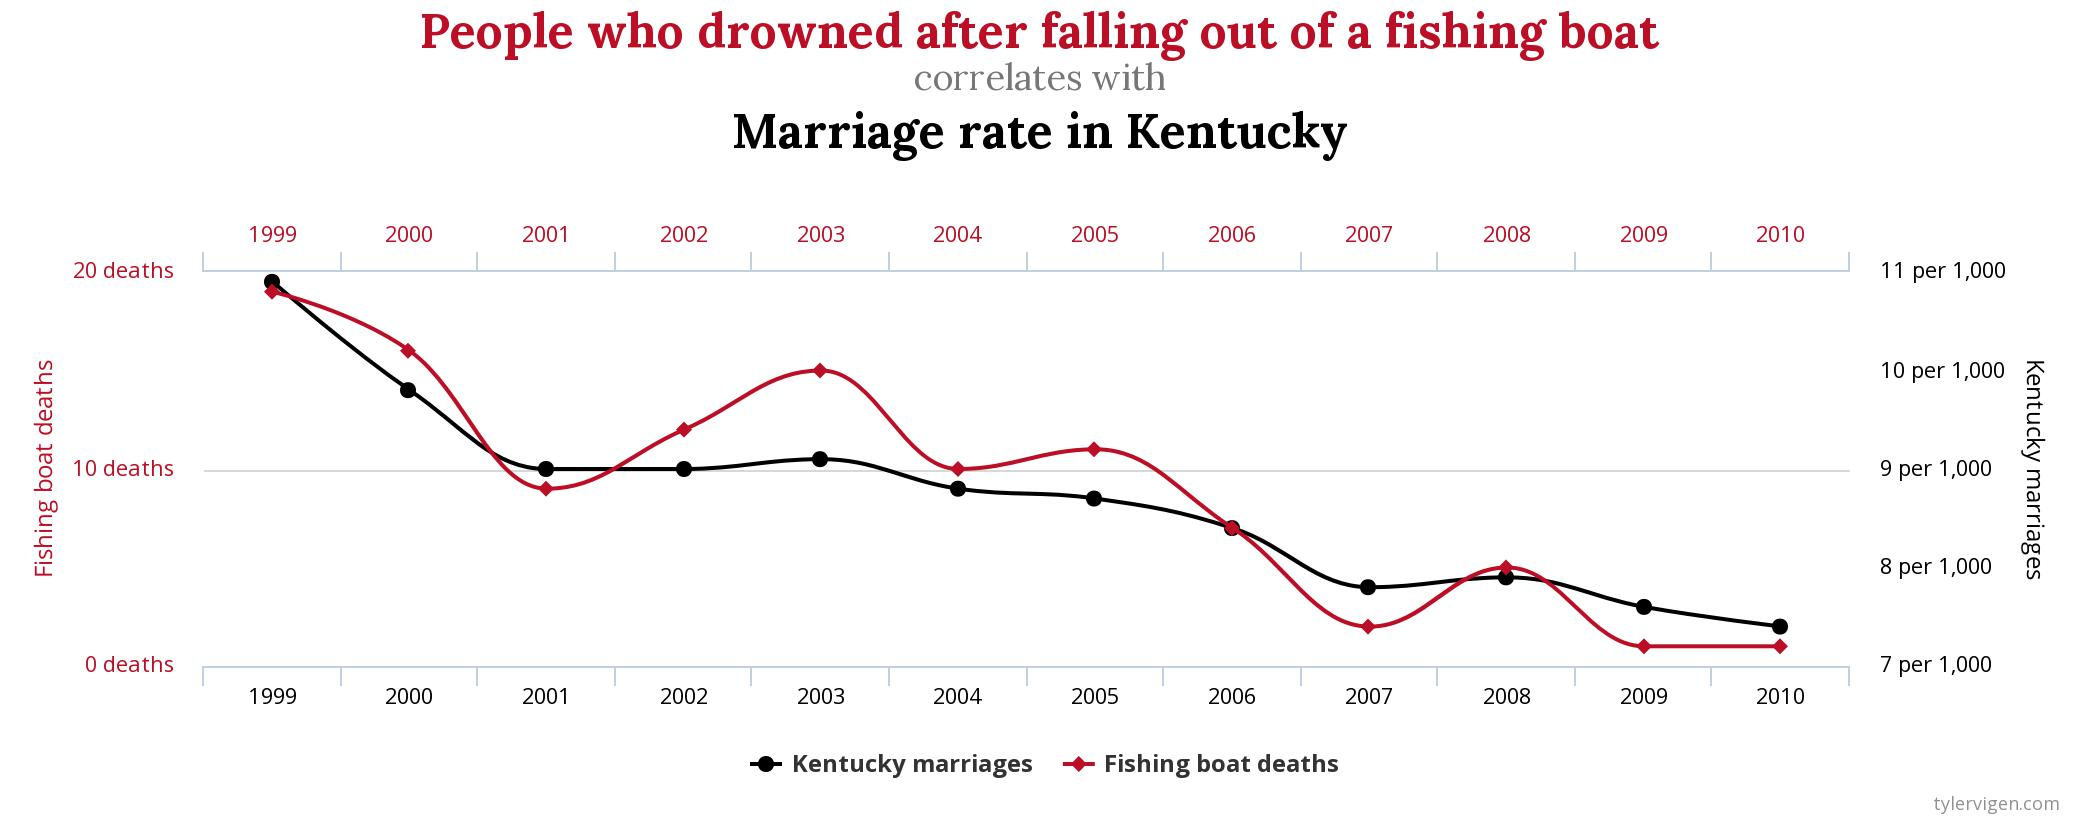 Kentucky marriages vs. people who drown